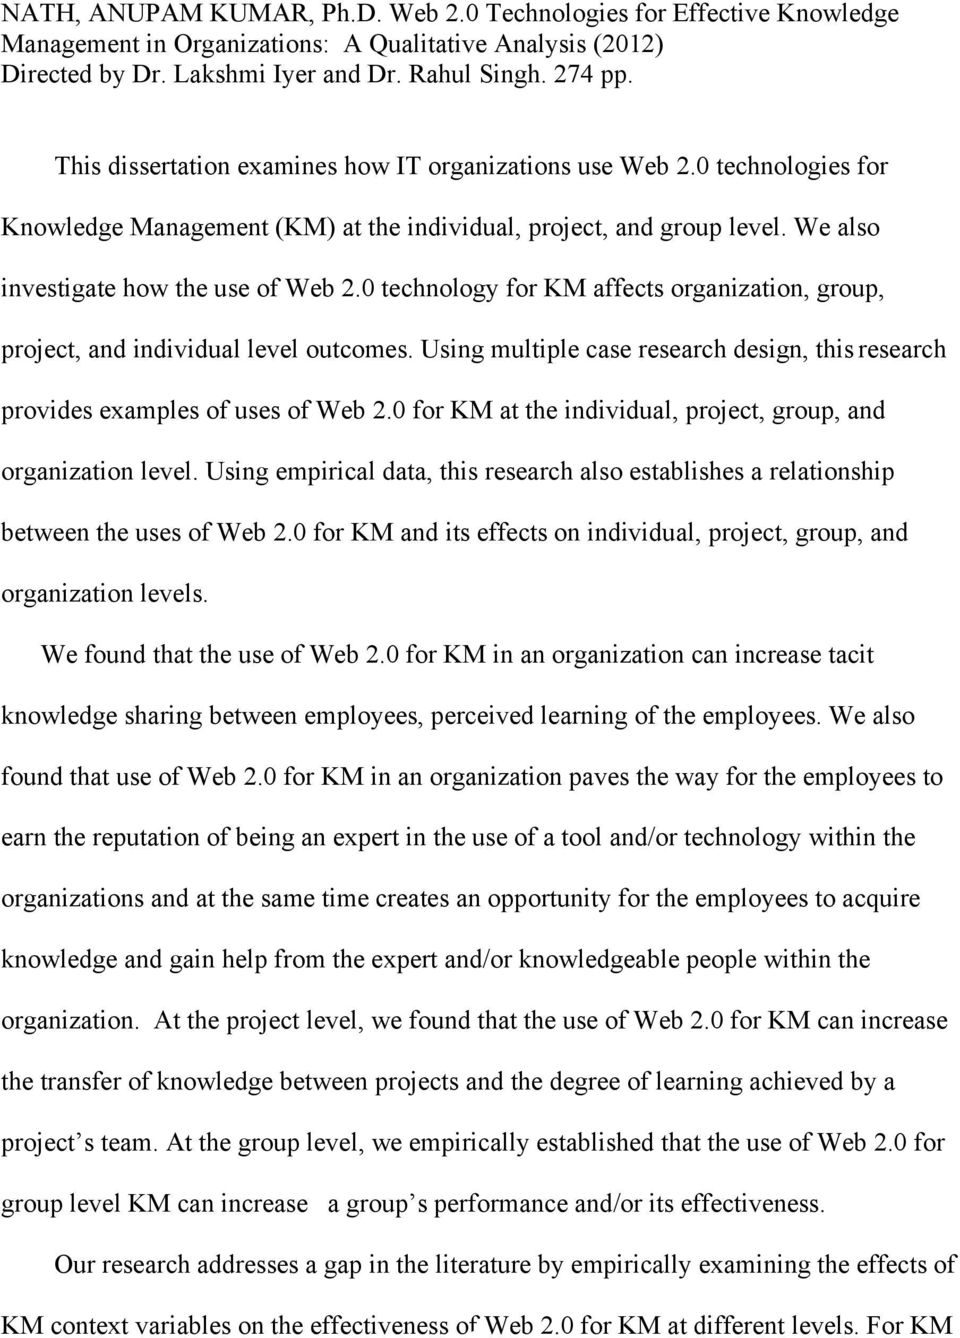 0 technology for KM affects organization, group, project, and individual level outcomes. Using multiple case research design, this research provides examples of uses of Web 2.